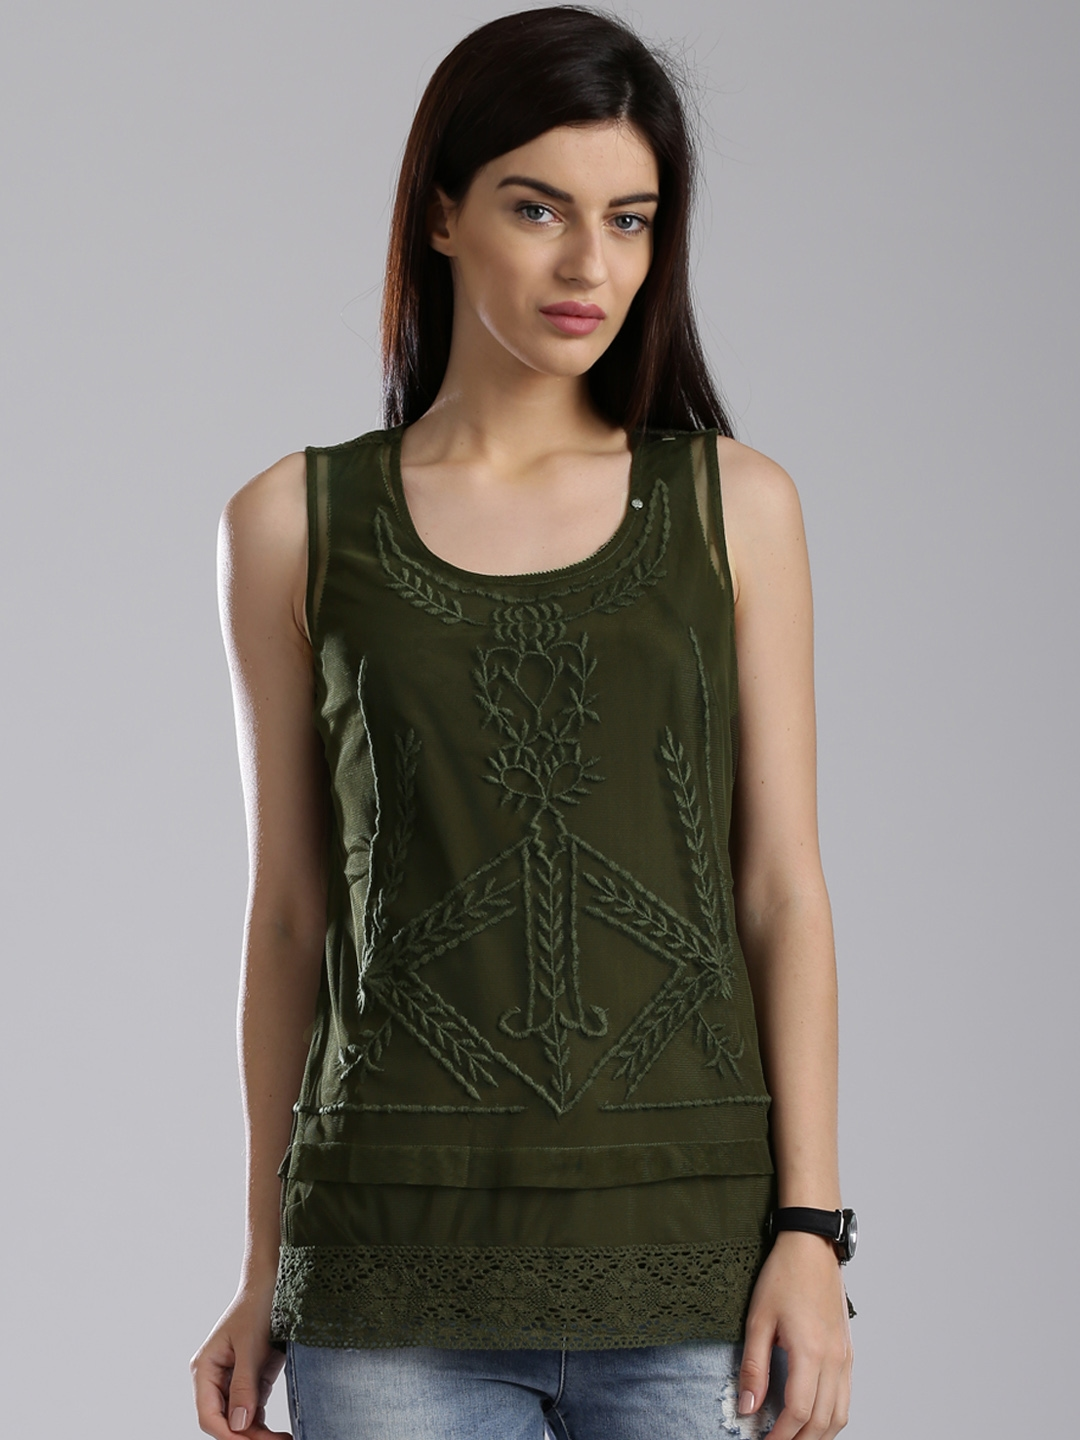 327bd48c8b Buy GAS Olive Green Semi Sheer Embroidered Polyester Top - Tops for ...